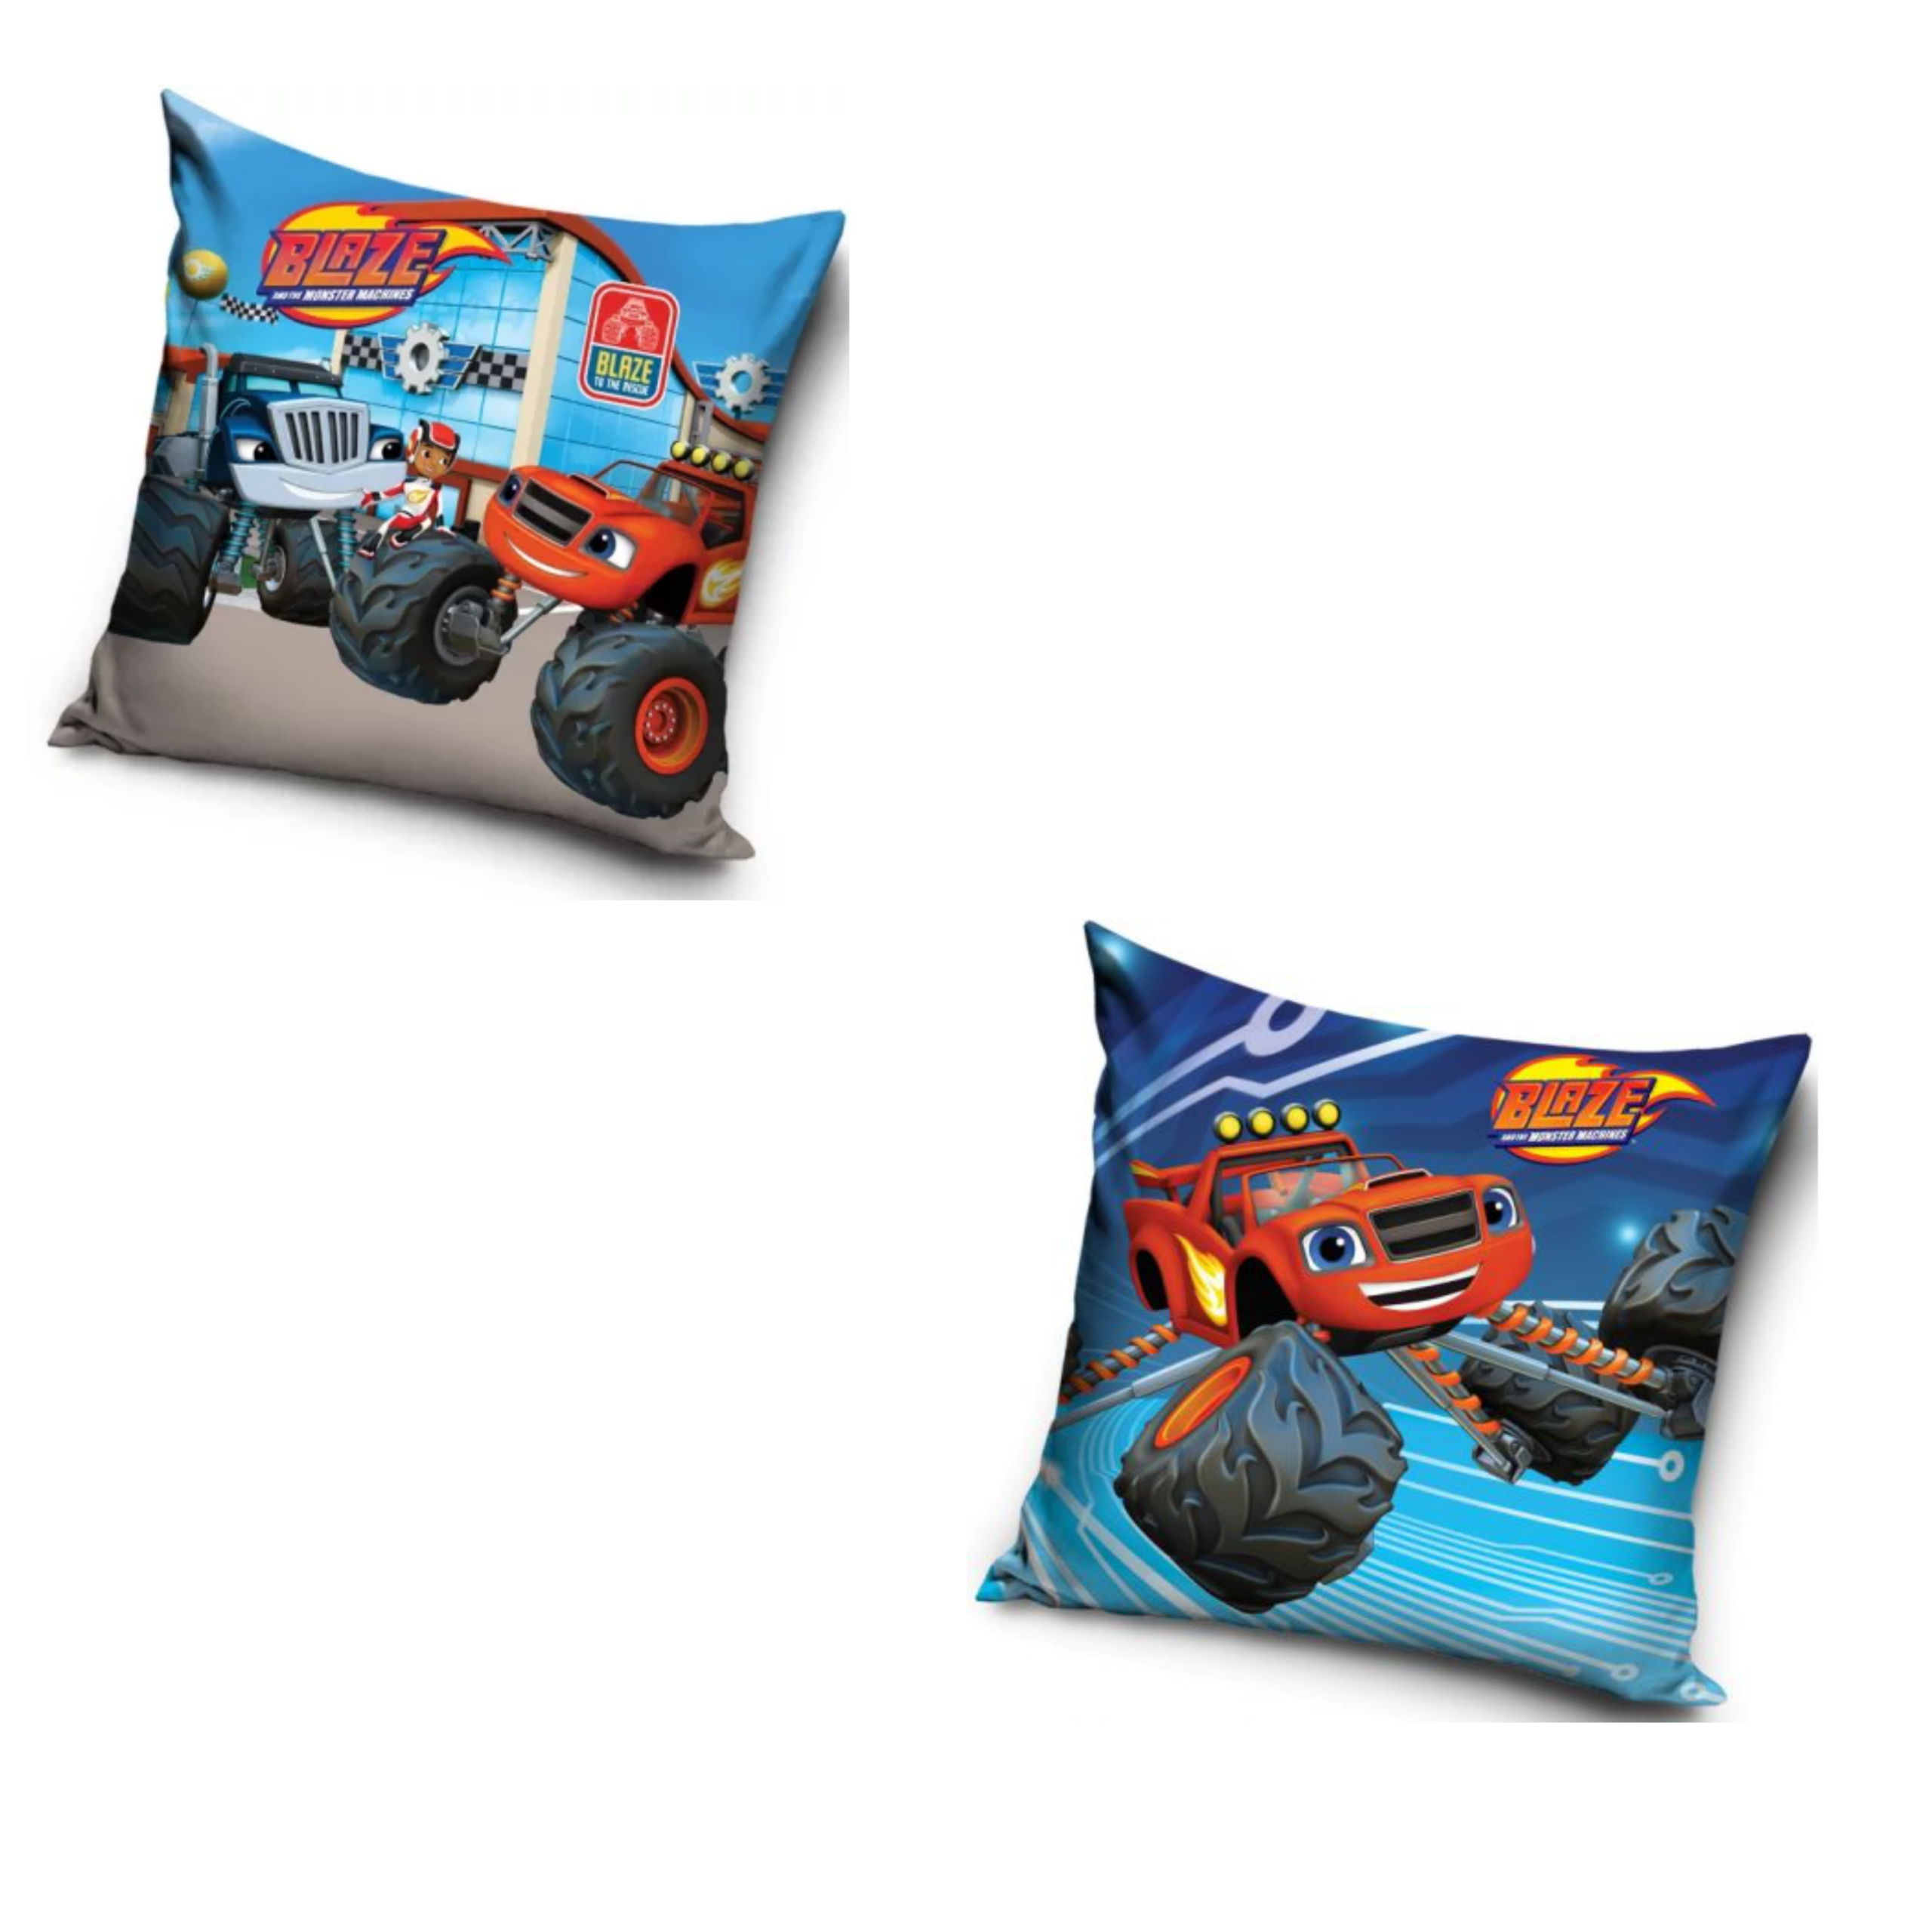 Blaze Goal And Blaze Up Close 2 Pack Cushion Set